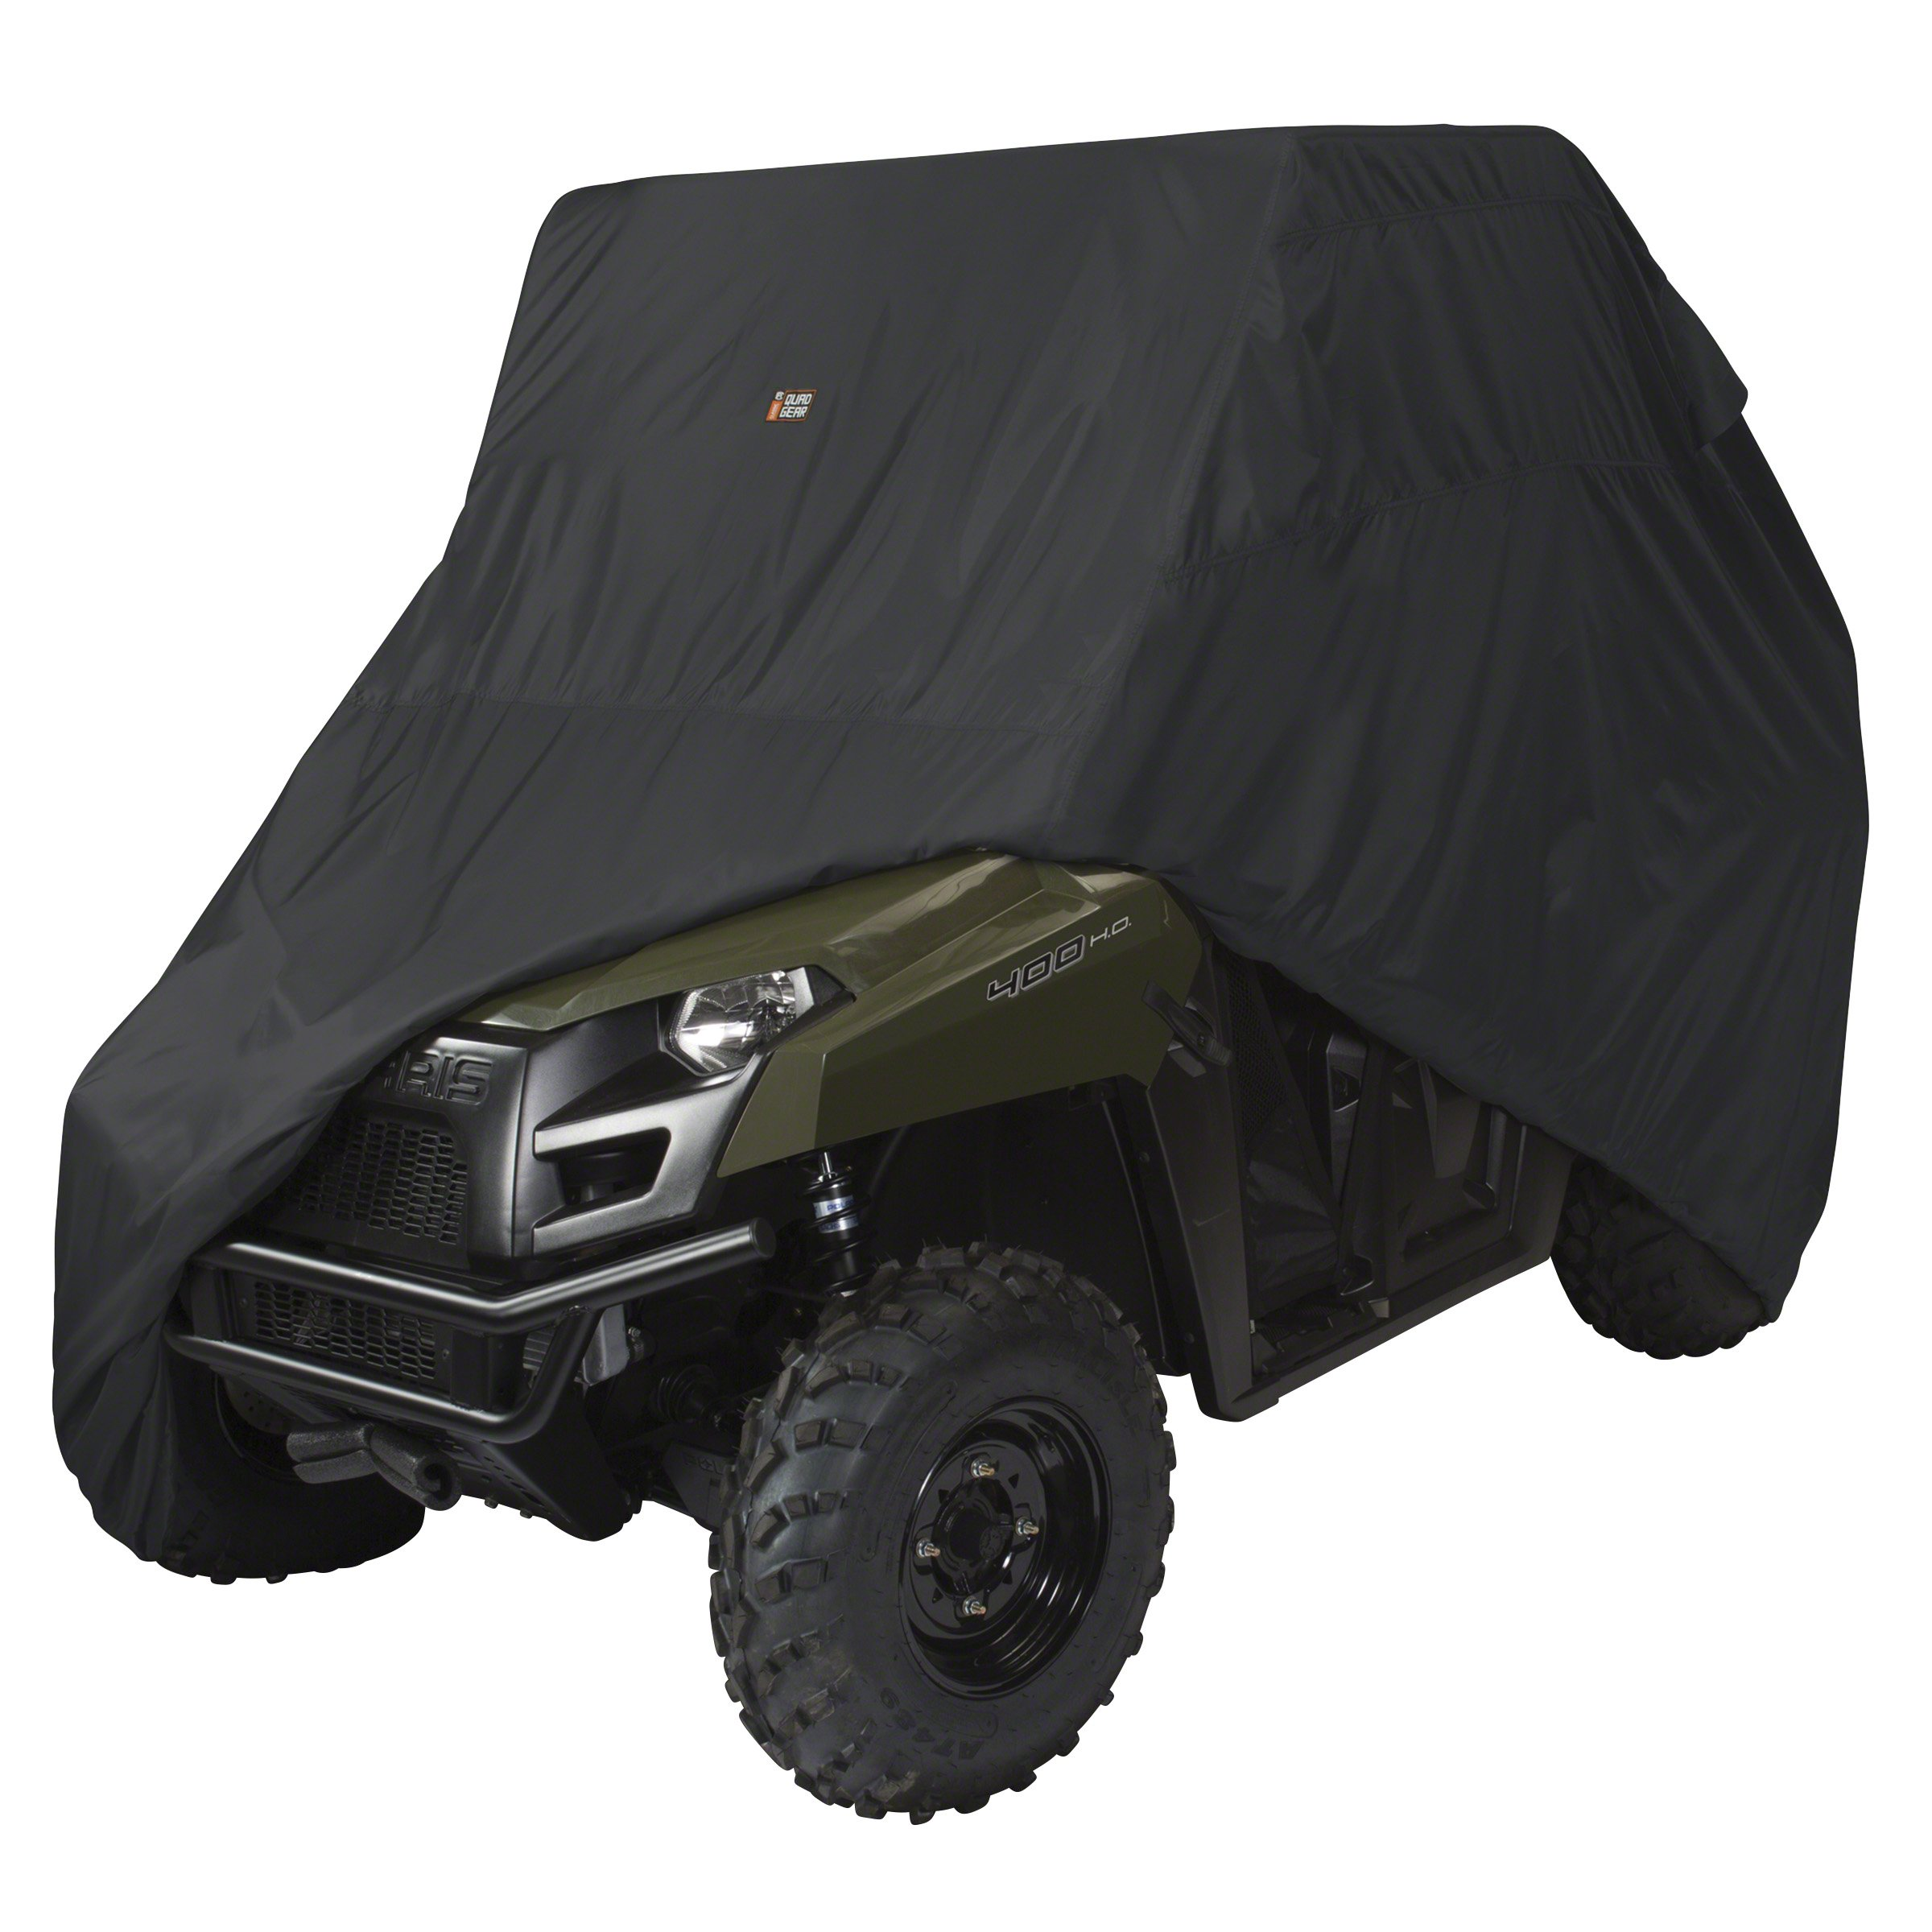 Classic Accessories 18-070-040401-00 Black QuadGear UTV Storage Cover (For Mid Size 2 Passenger UTVs Up To 115''L 62''W 70''H) by Classic Accessories (Image #1)